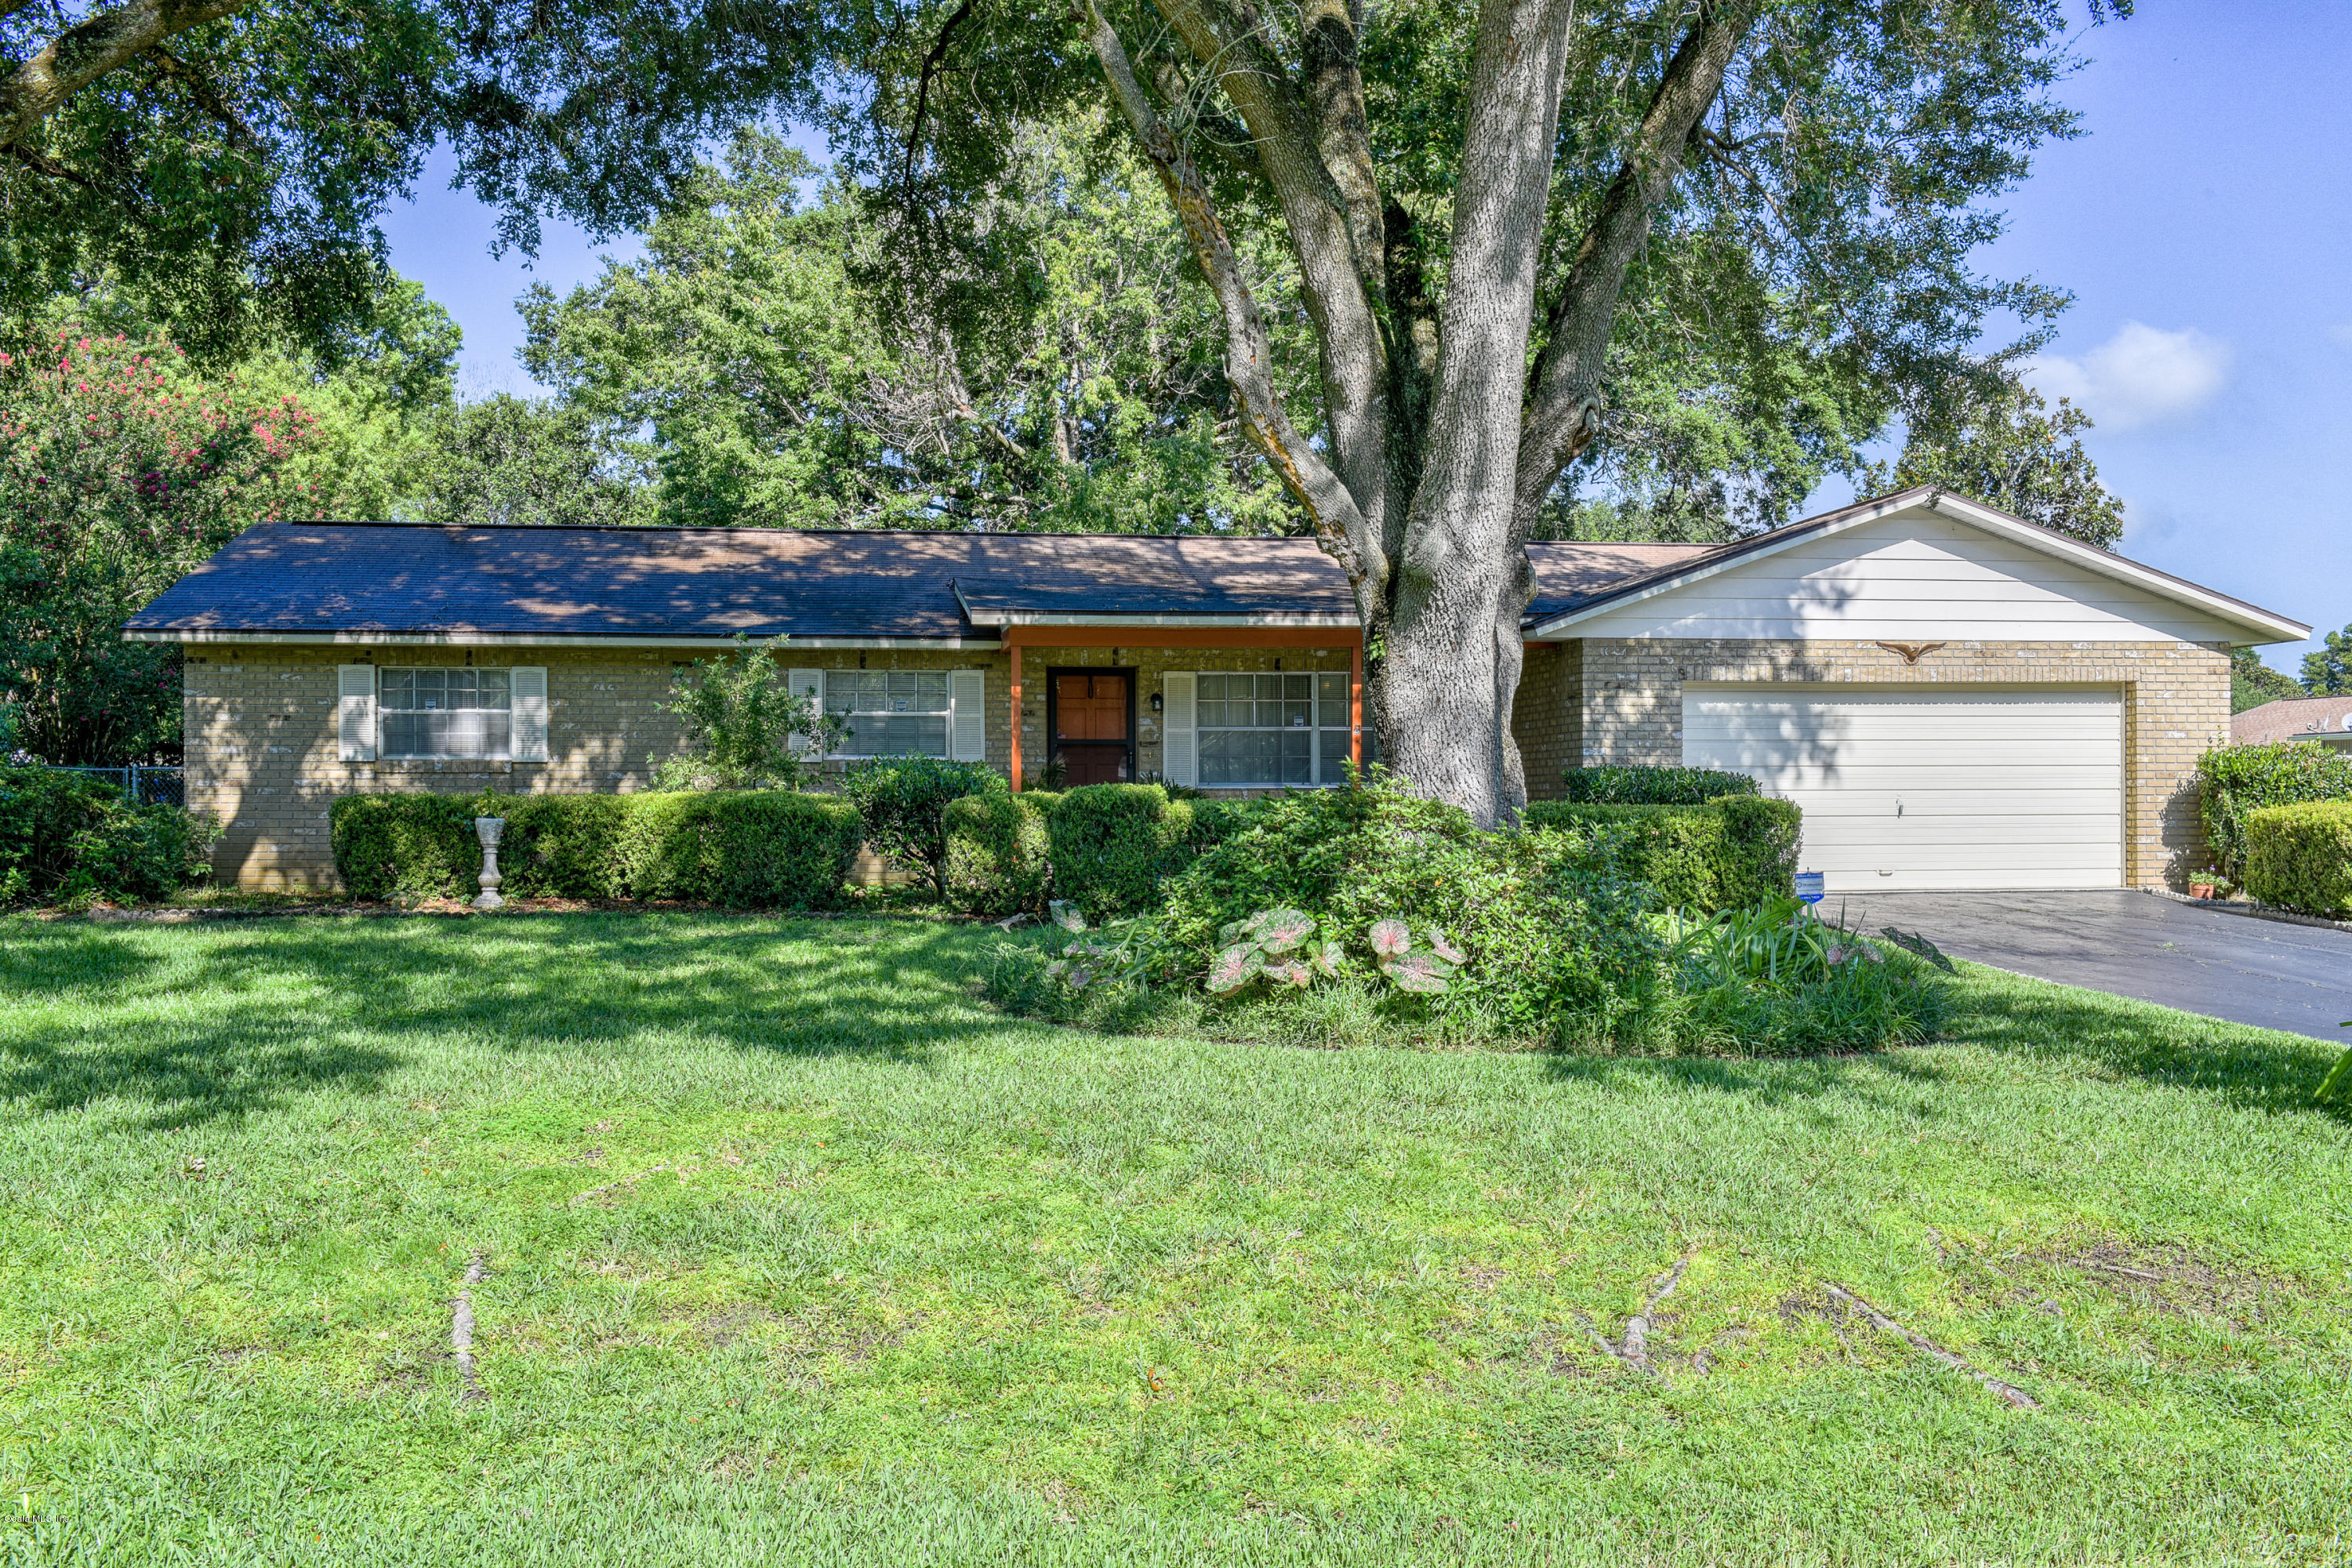 110 NE 50TH COURT, OCALA, FL 34470